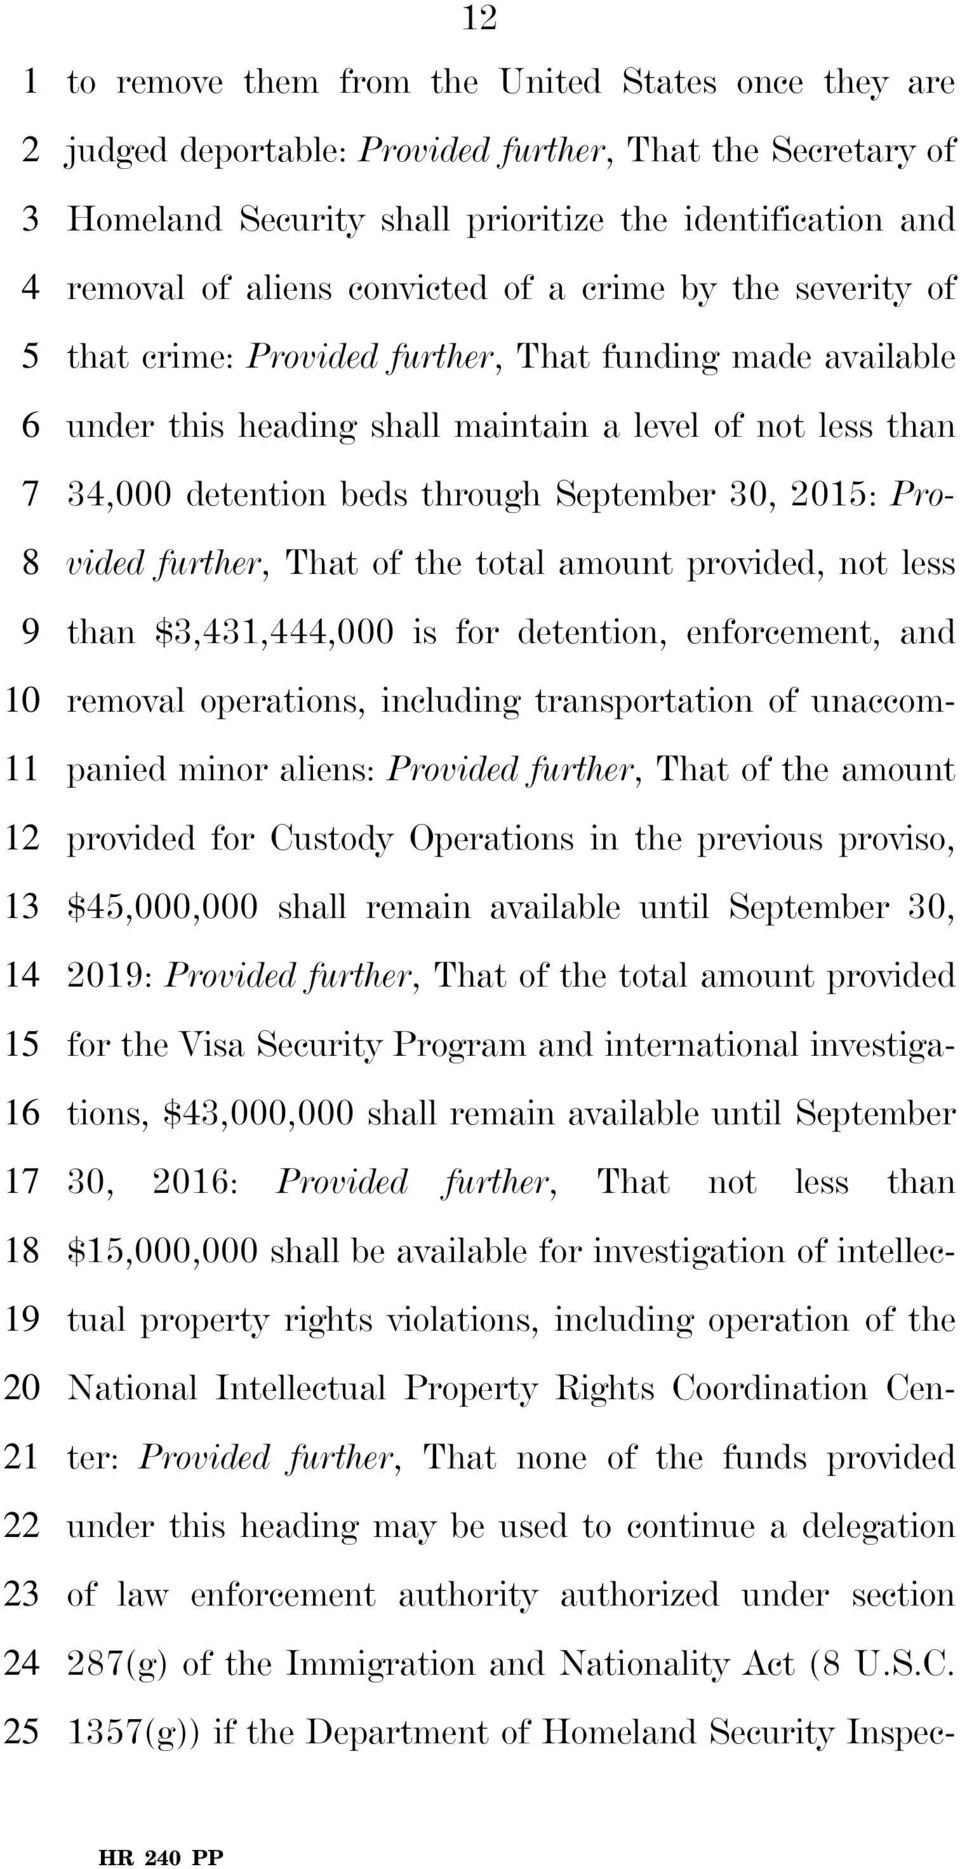 September 30, 2015: Pro- 8 vided further, That of the total amount provided, not less 9 than $3,431,444,000 is for detention, enforcement, and 10 removal operations, including transportation of